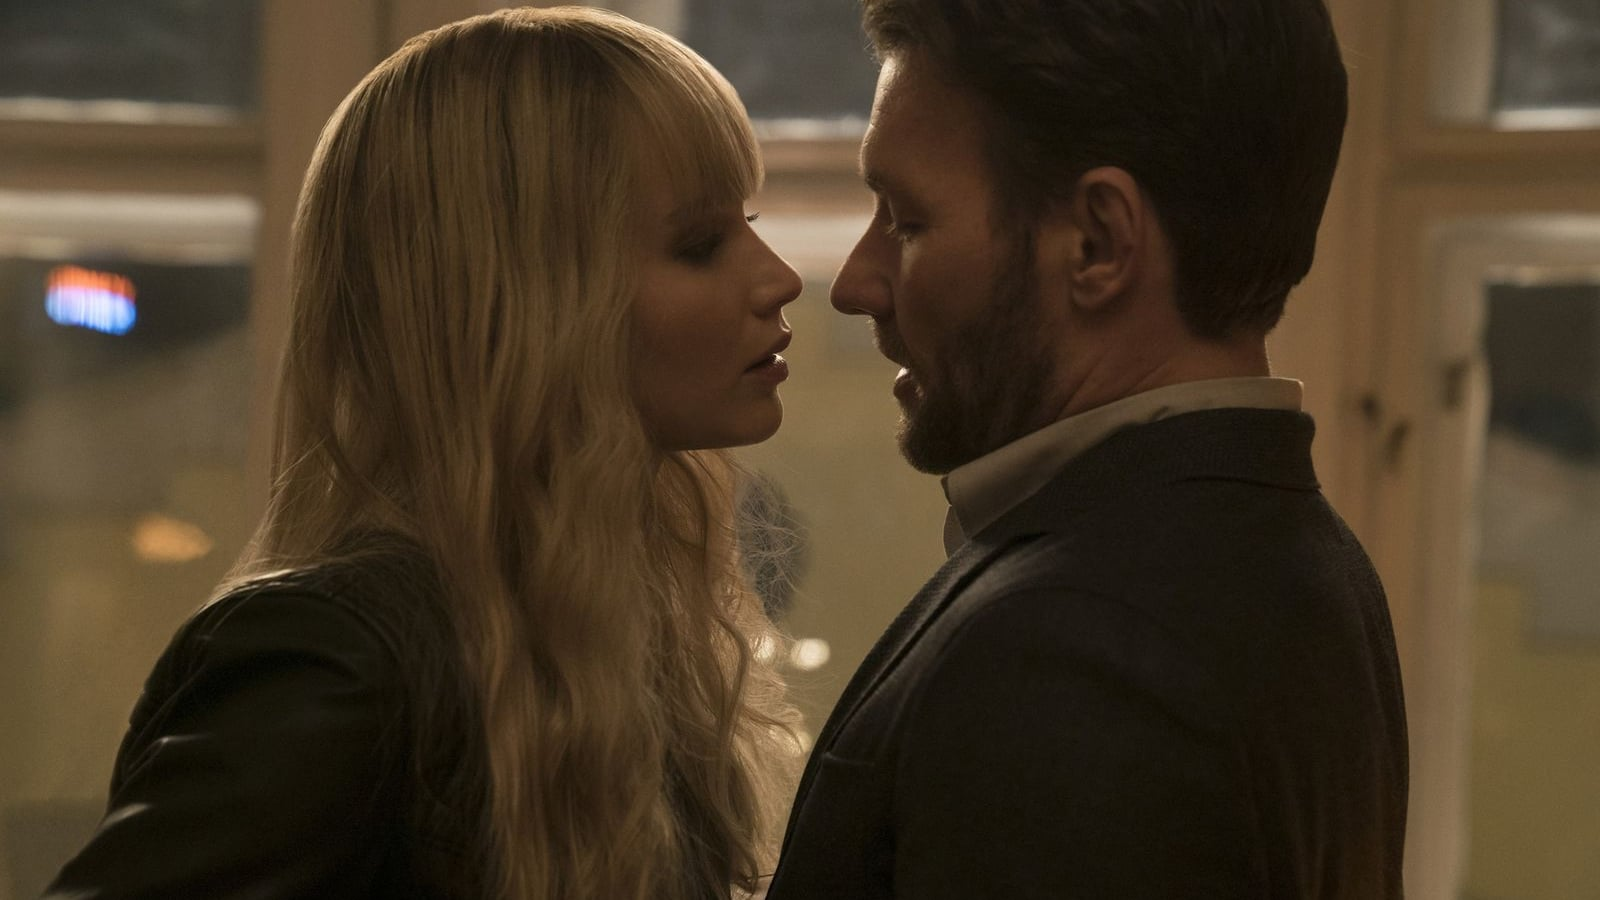 Watch Red Sparrow 2018 Movies Without Downloading